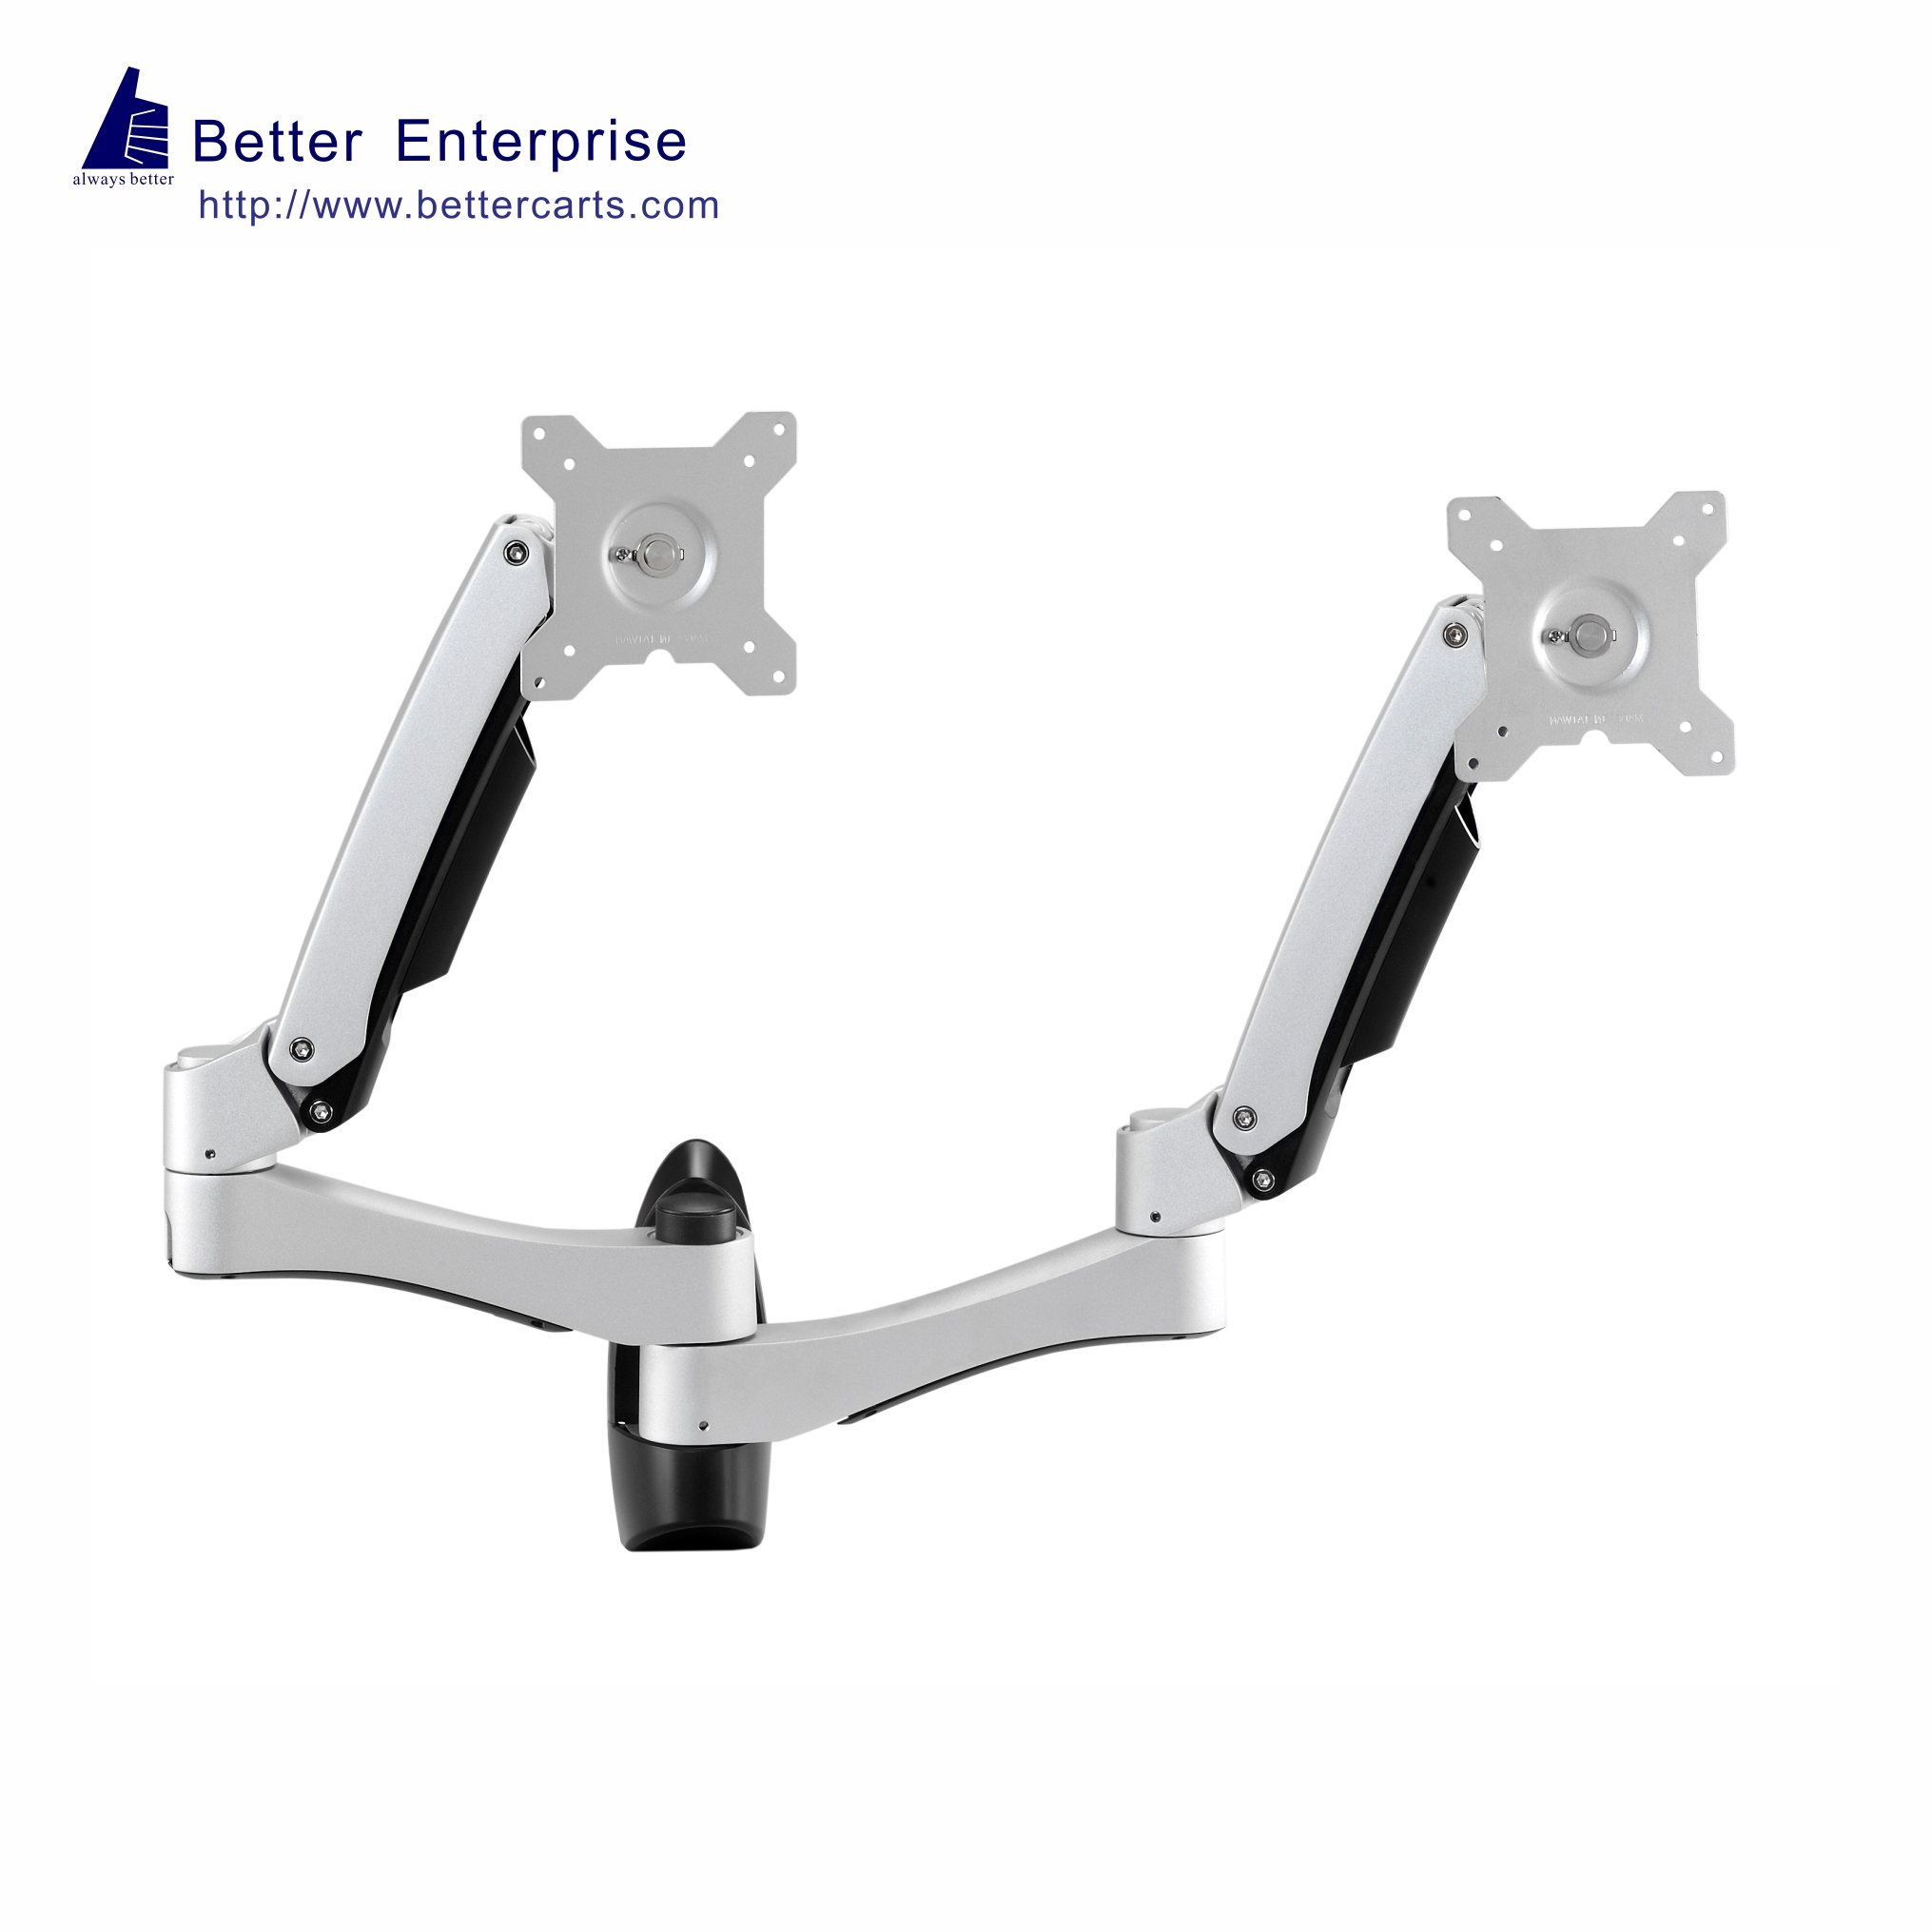 Wall Mount LCD Monitor Duo Arm, Wall Mount LCD Monitor Duo